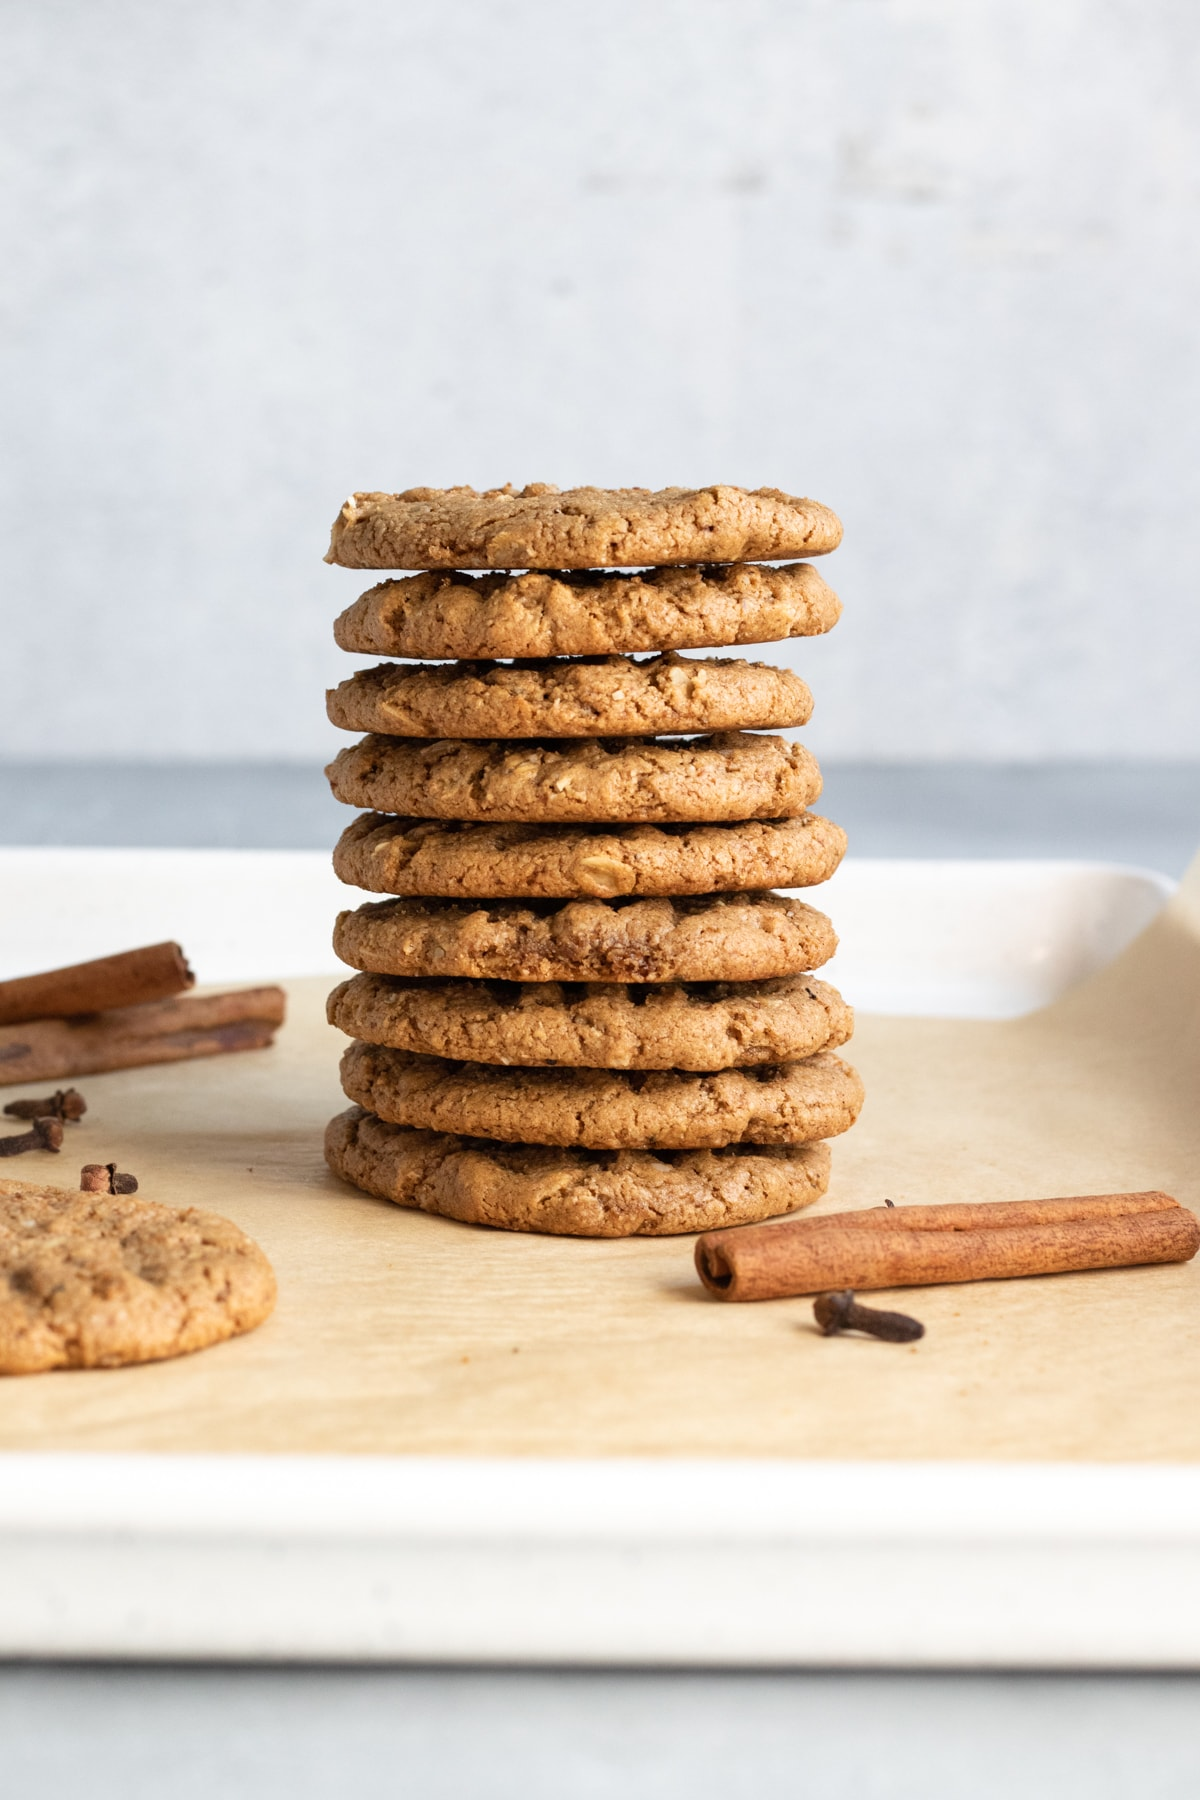 a tall stack of cookies on a baking sheet with cinnamon sticks and cloves